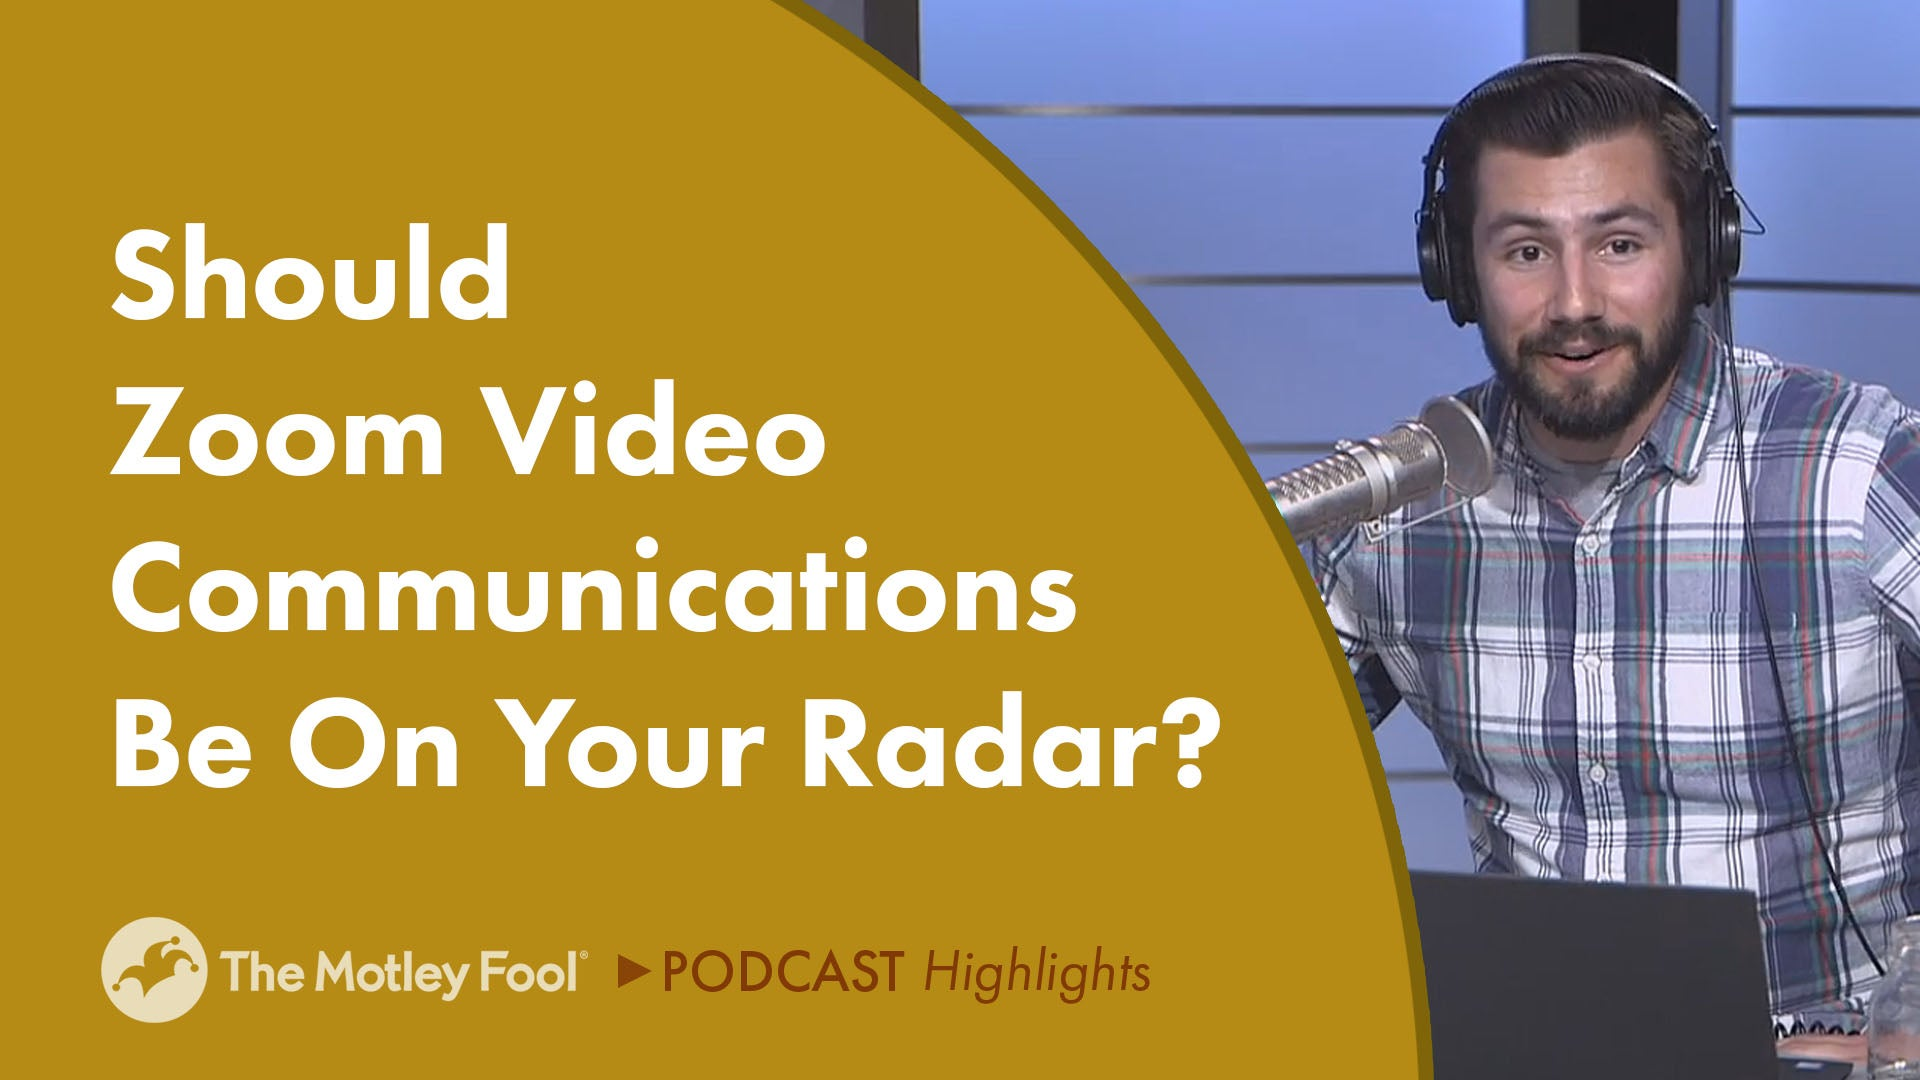 Should Zoom Video Communications Be On Your Radar? | The